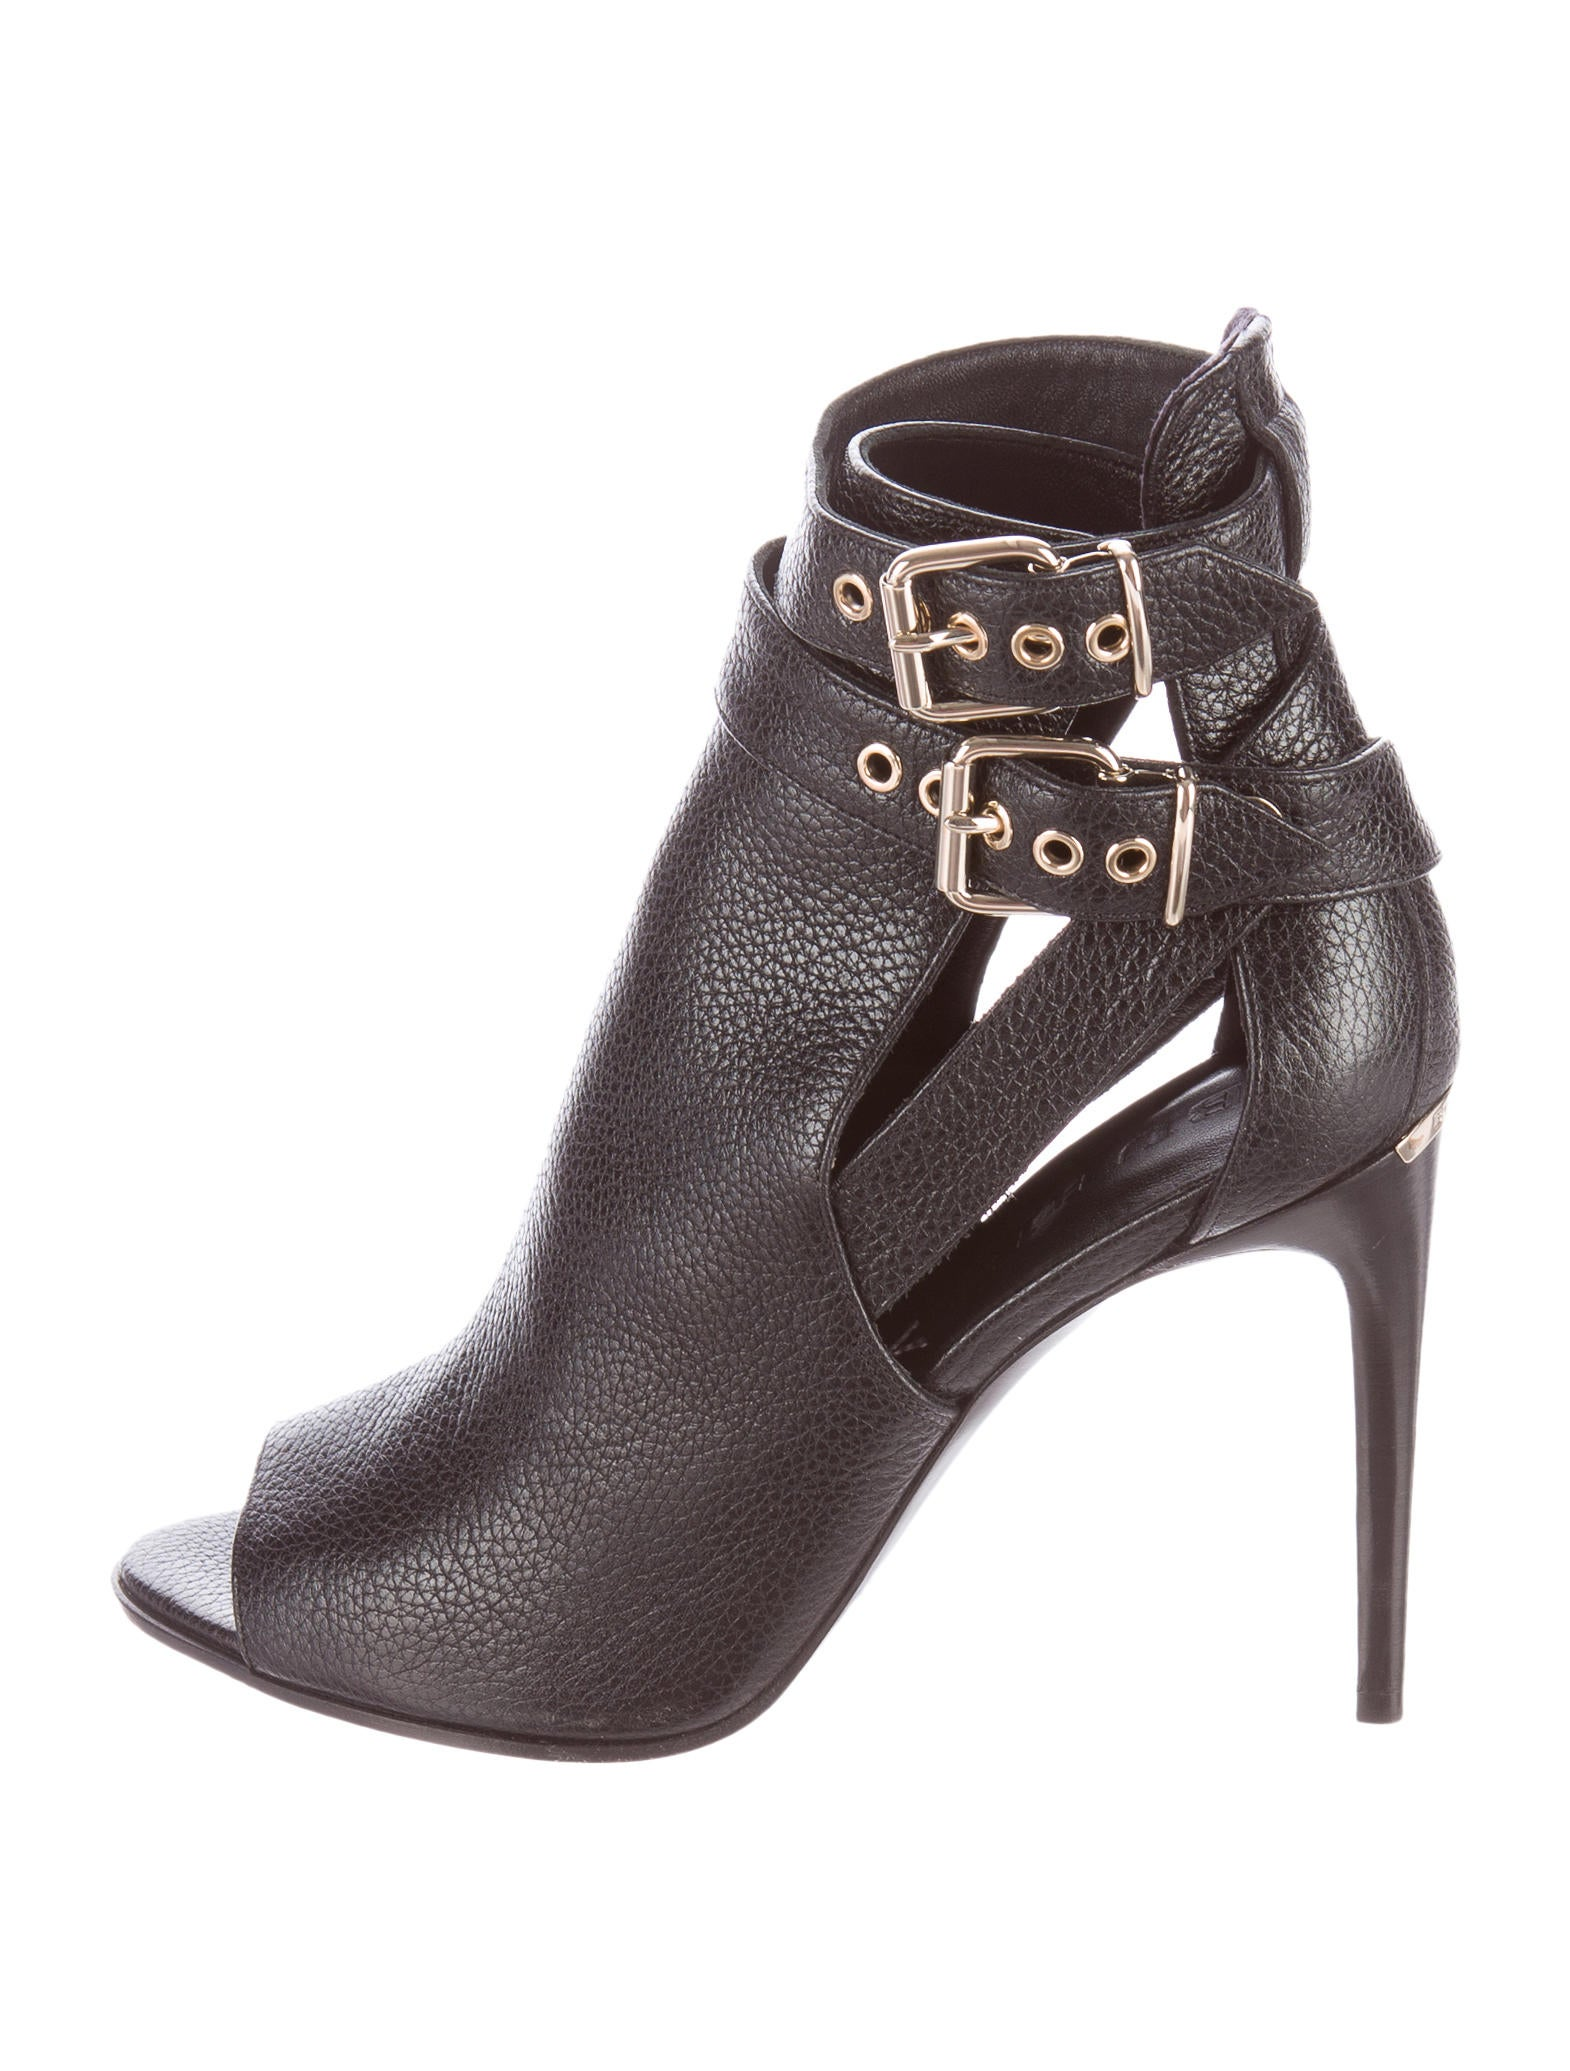 Shop the latest women sexy booties at fatalovely.cf offer stylish cheap booties,including ankle booties,wedge booties,high heel booties,leather booties,platform booties,sexy black booties,fringe booties,suede fringe booties,lace up booties,spiked booties,suede booties,leopard print booties .